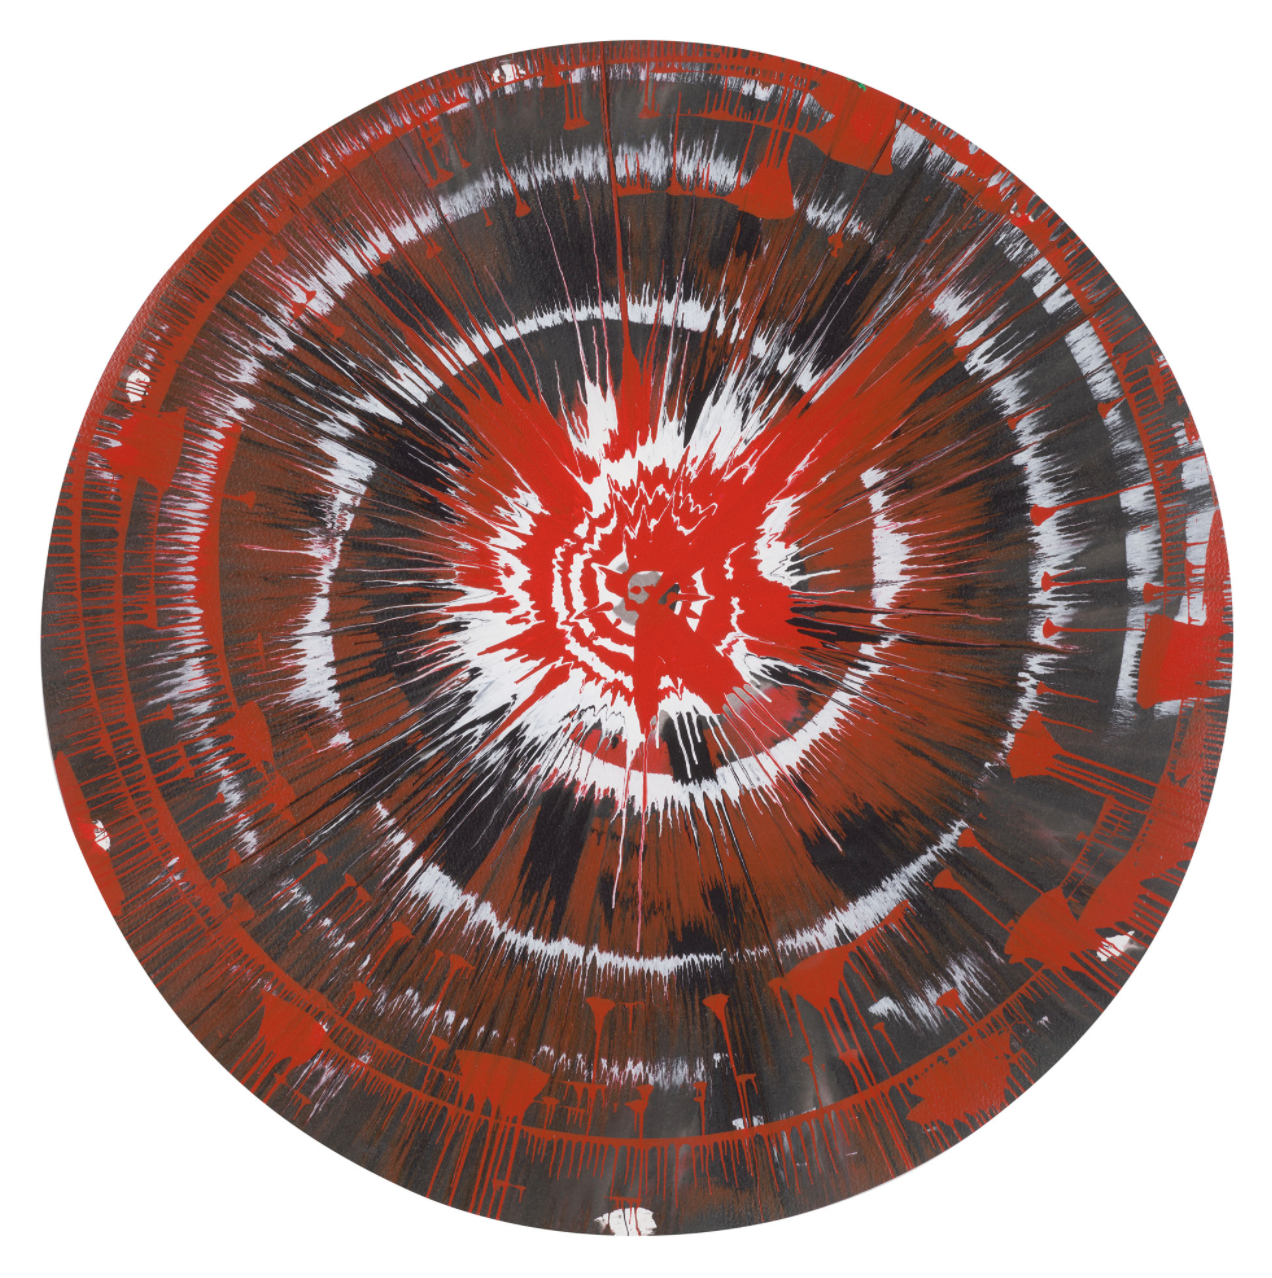 Untitled Spin Painting by Damien Hirst